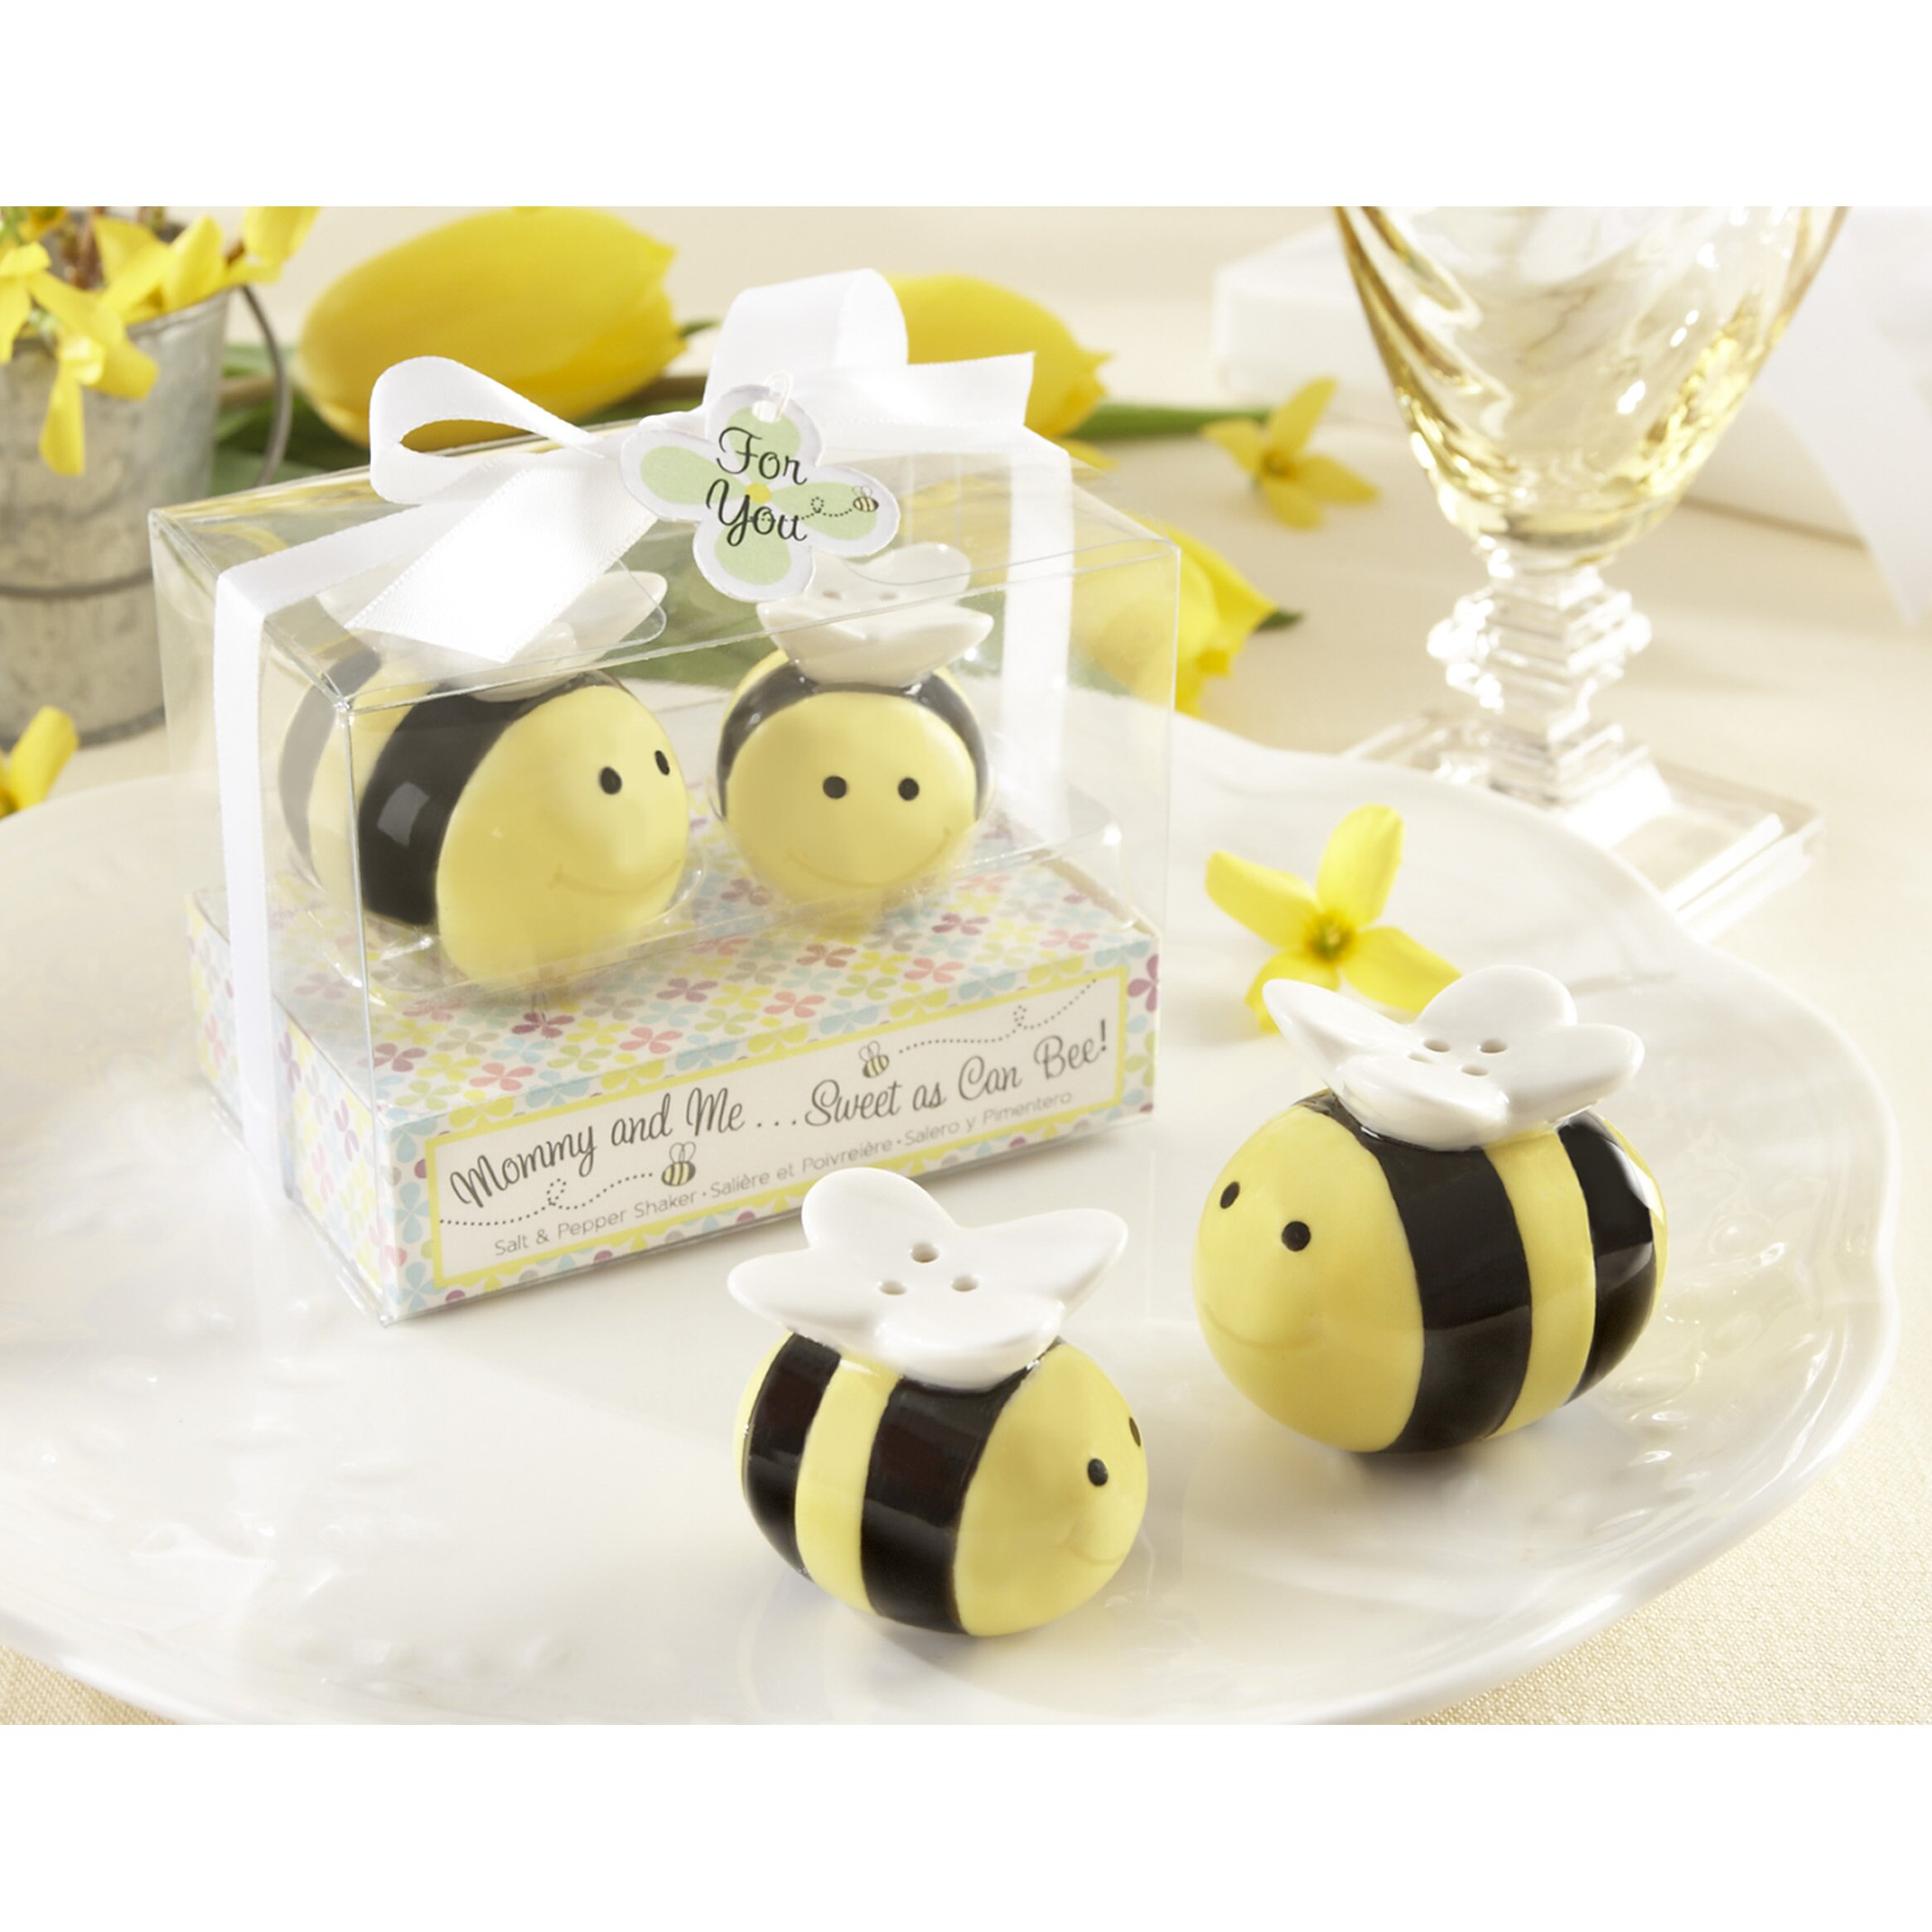 Kate Aspen Quot Mommy And Me Sweet As Can Bee Quot Ceramic Honeybee Salt And Pepper Shaker Amp Reviews